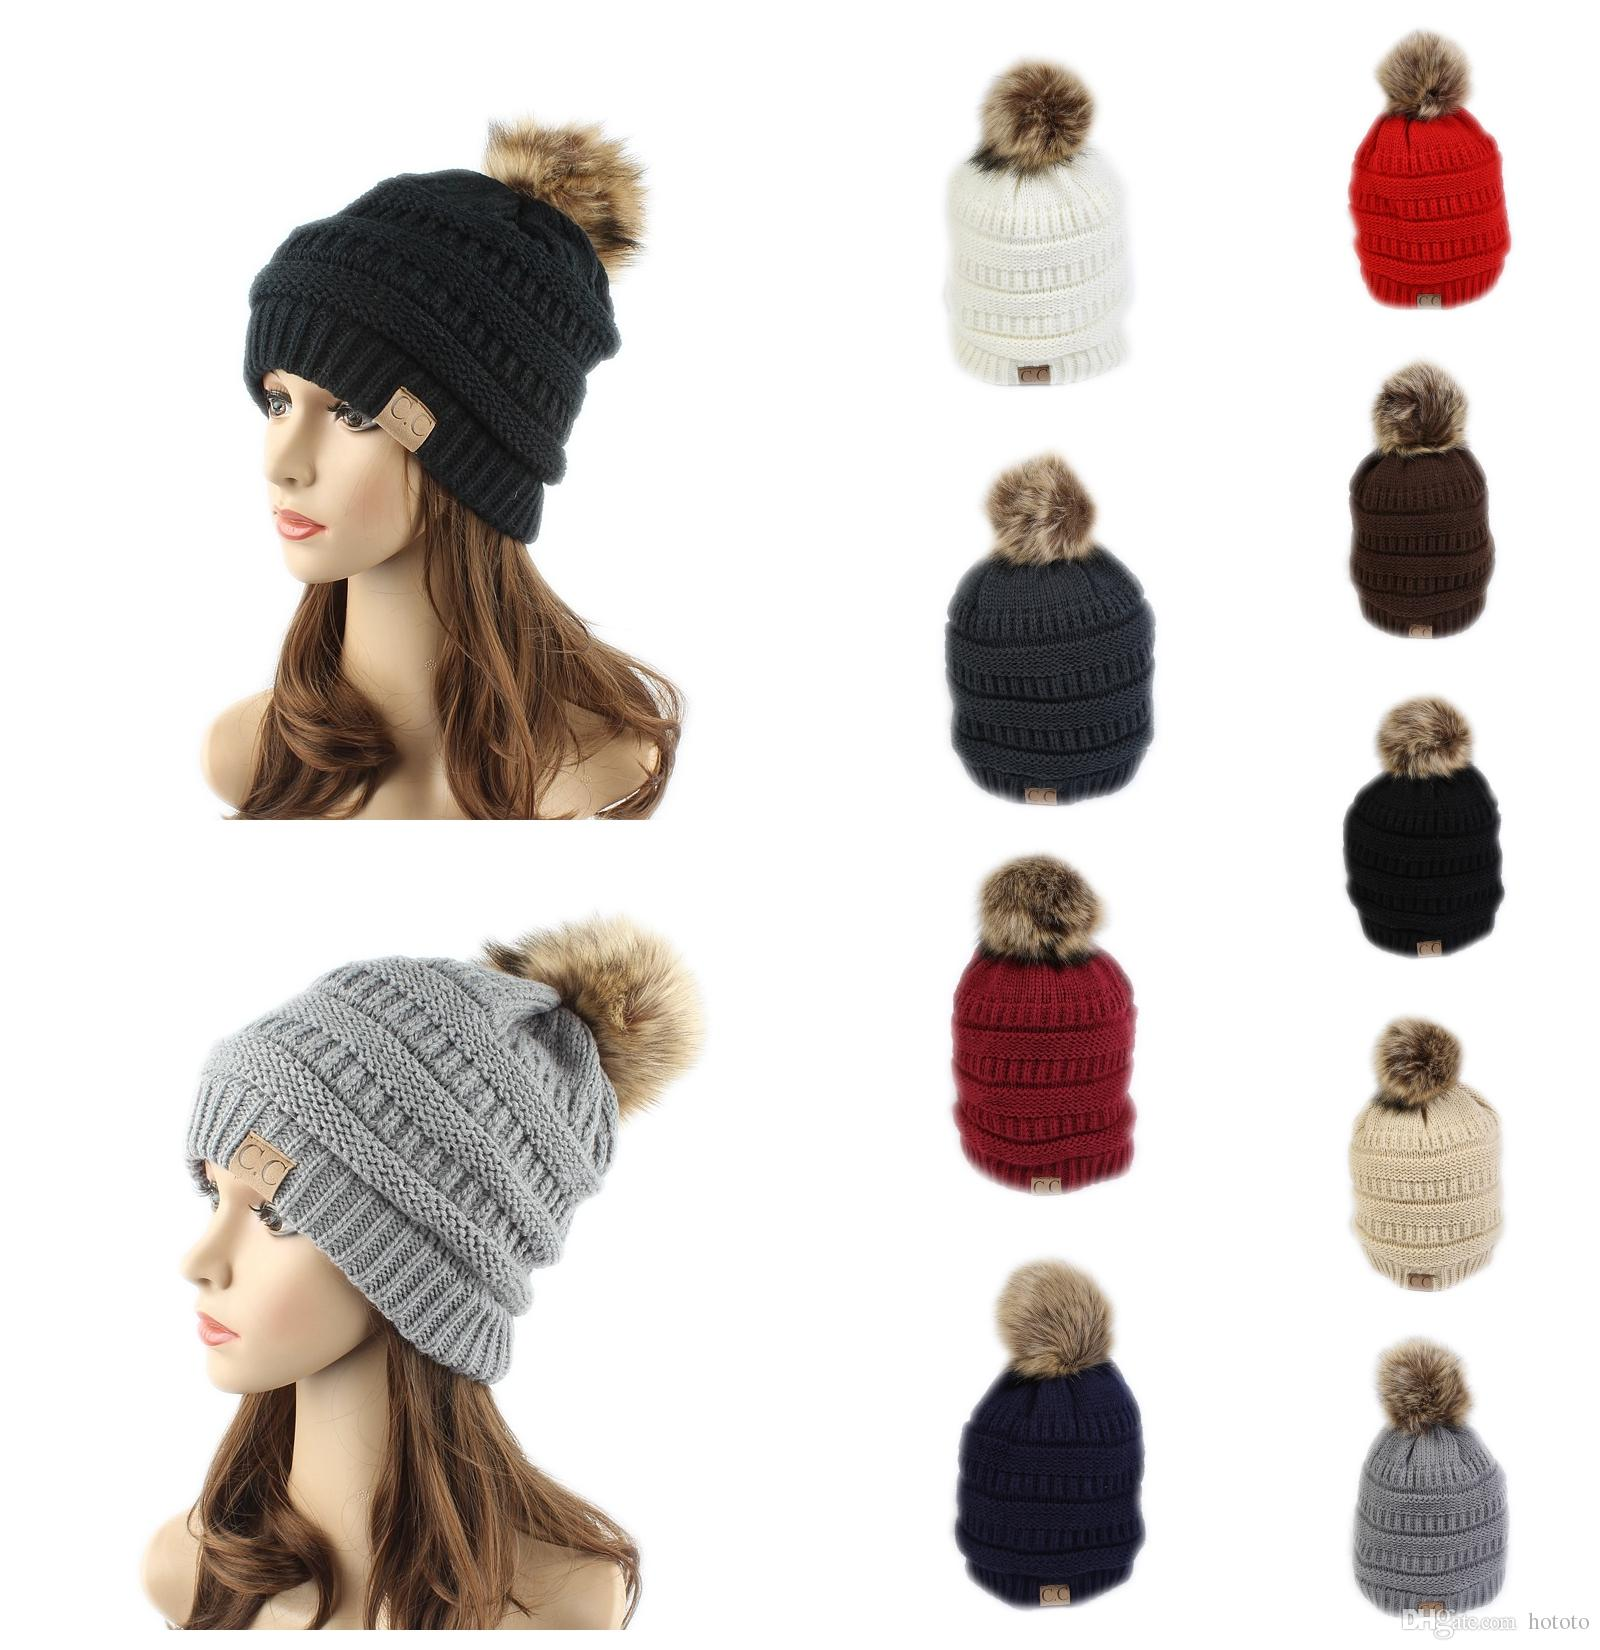 New Arrival CC Winter Thendy Warm Hats Label Fur Poms Beanie Women Men  Knitted Cable Skull Caps CC Beanie Hats Skull Caps Online with  3.84 Piece  on ... c9d5a9e3aa0a